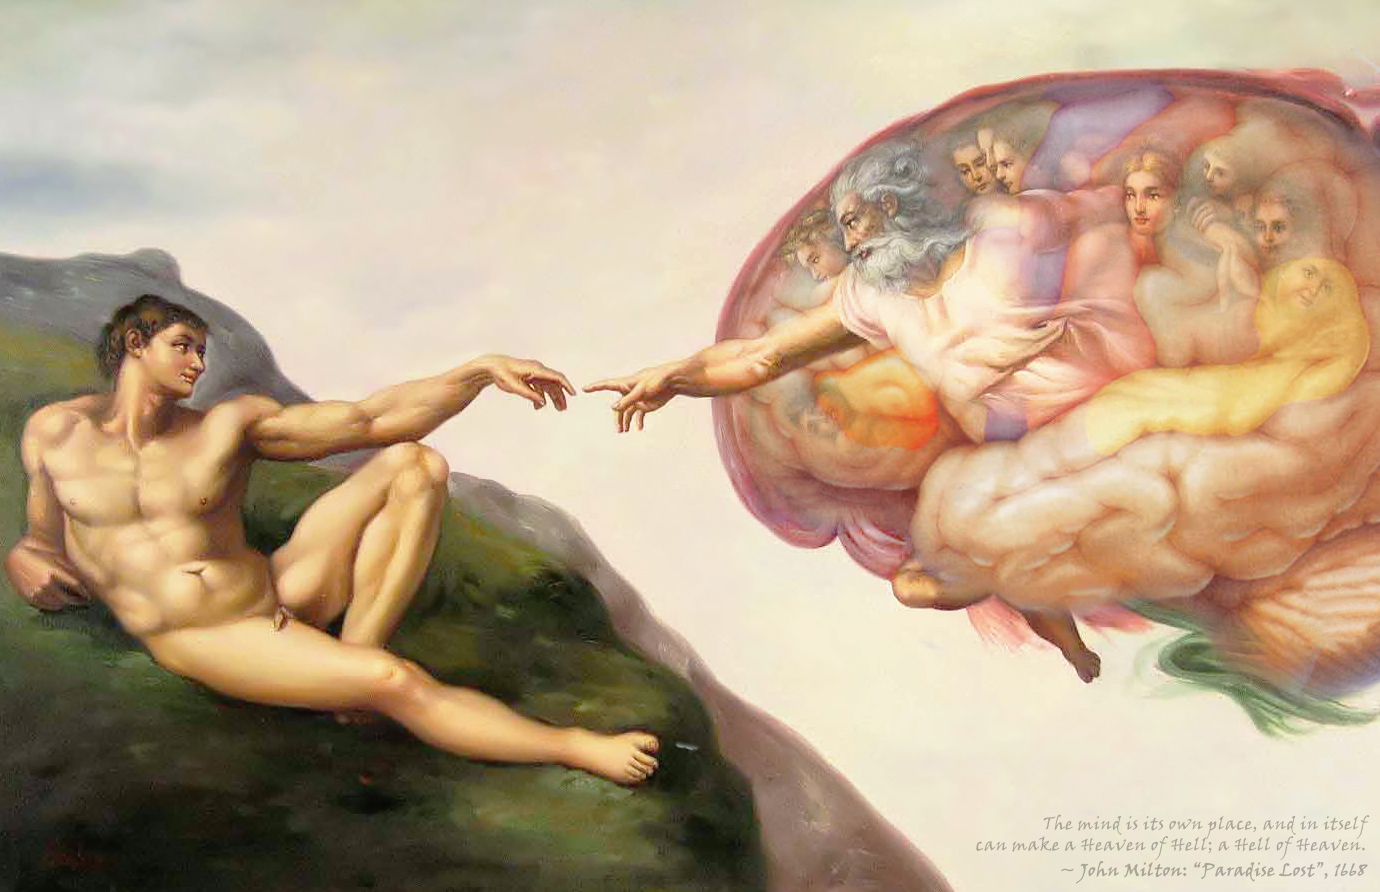 Evolutionary Psychology: Predictively Powerful or Riddled with Just-So Stories? - Areo